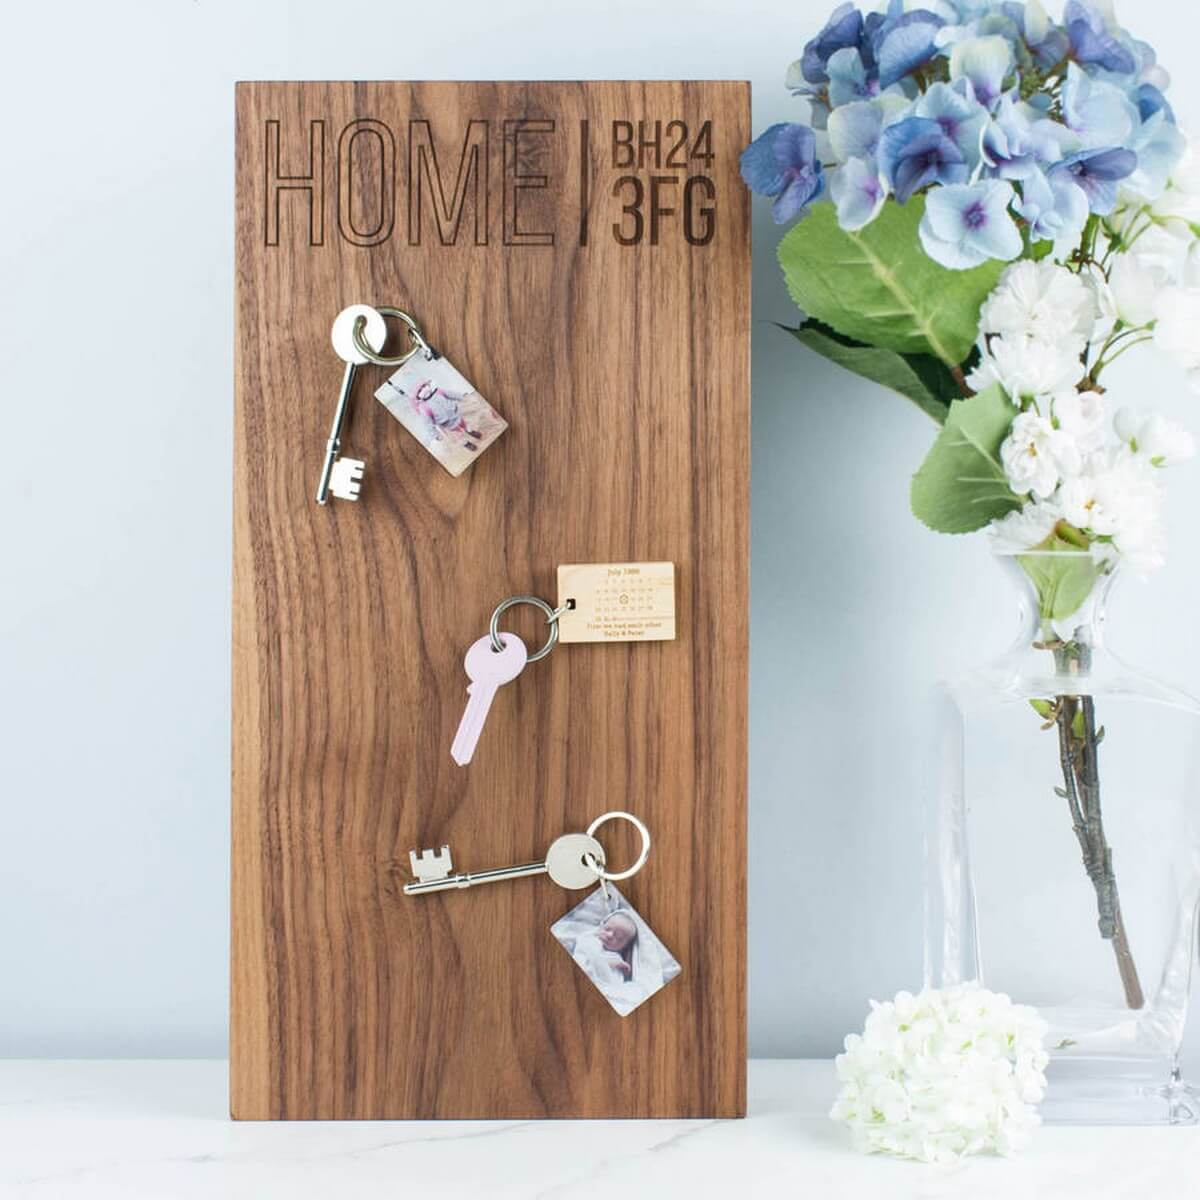 Wooden Key Holder With Shelf Lovely Key Holders You Need To Never Lose Your Keys Again